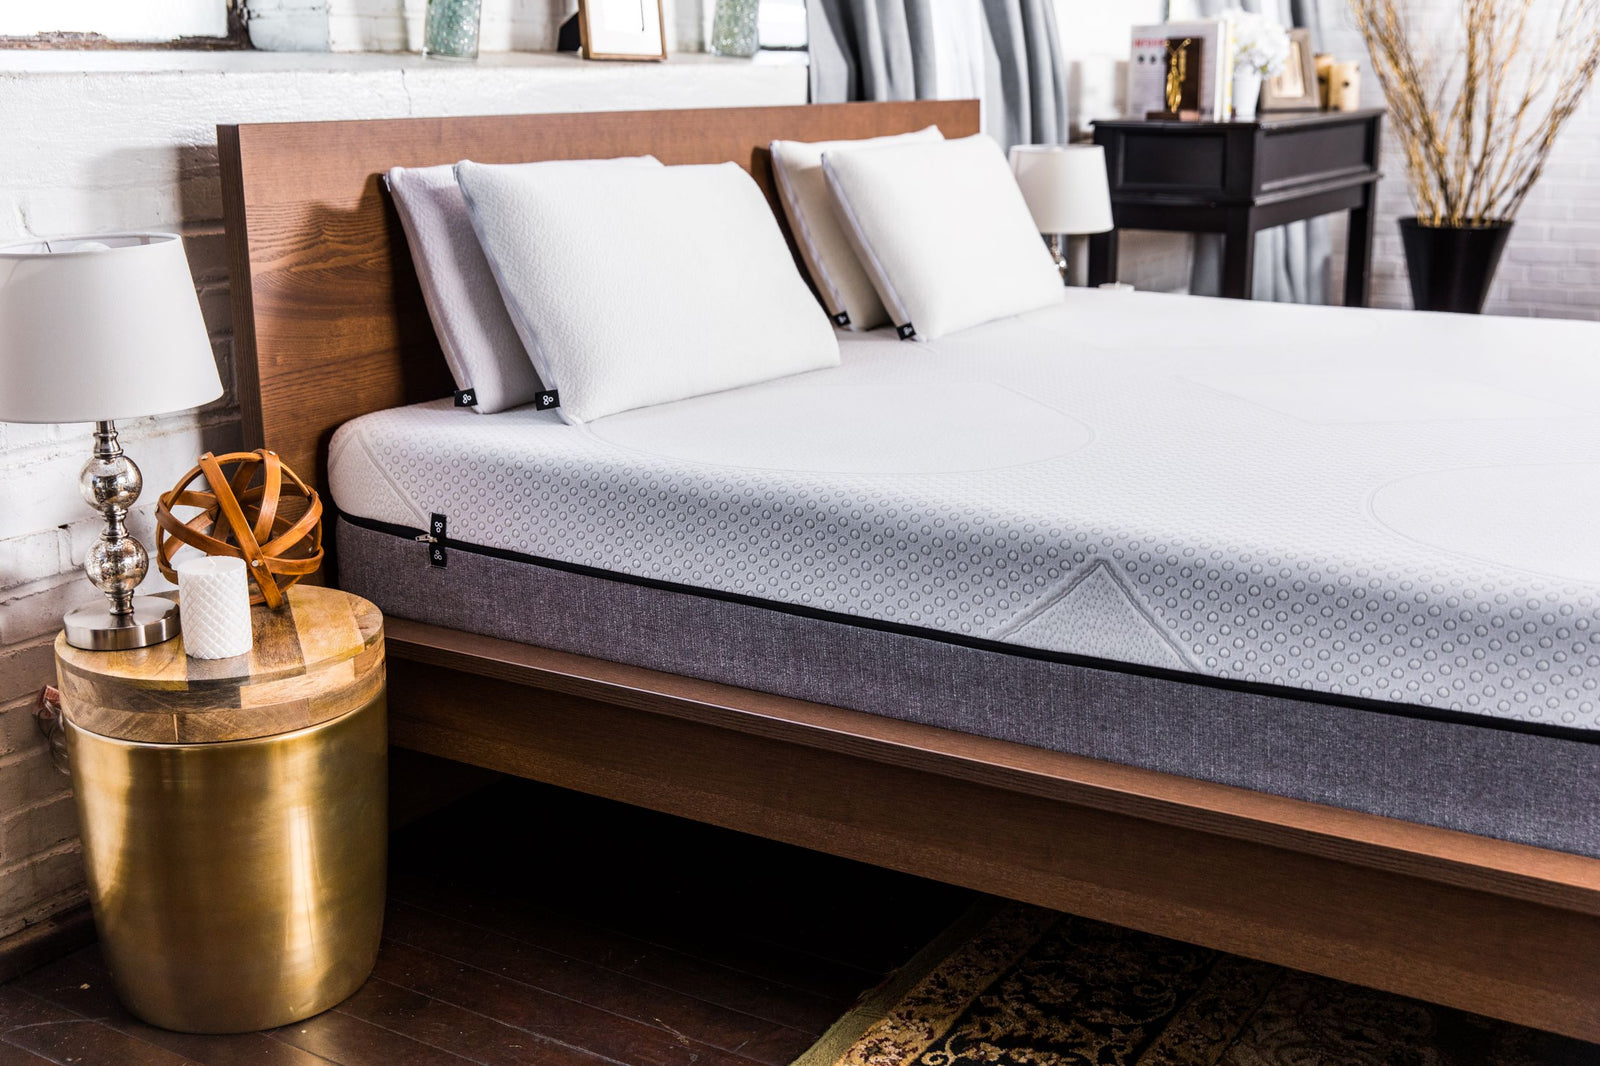 Queen Size Bed Dimensions | Yogasleep